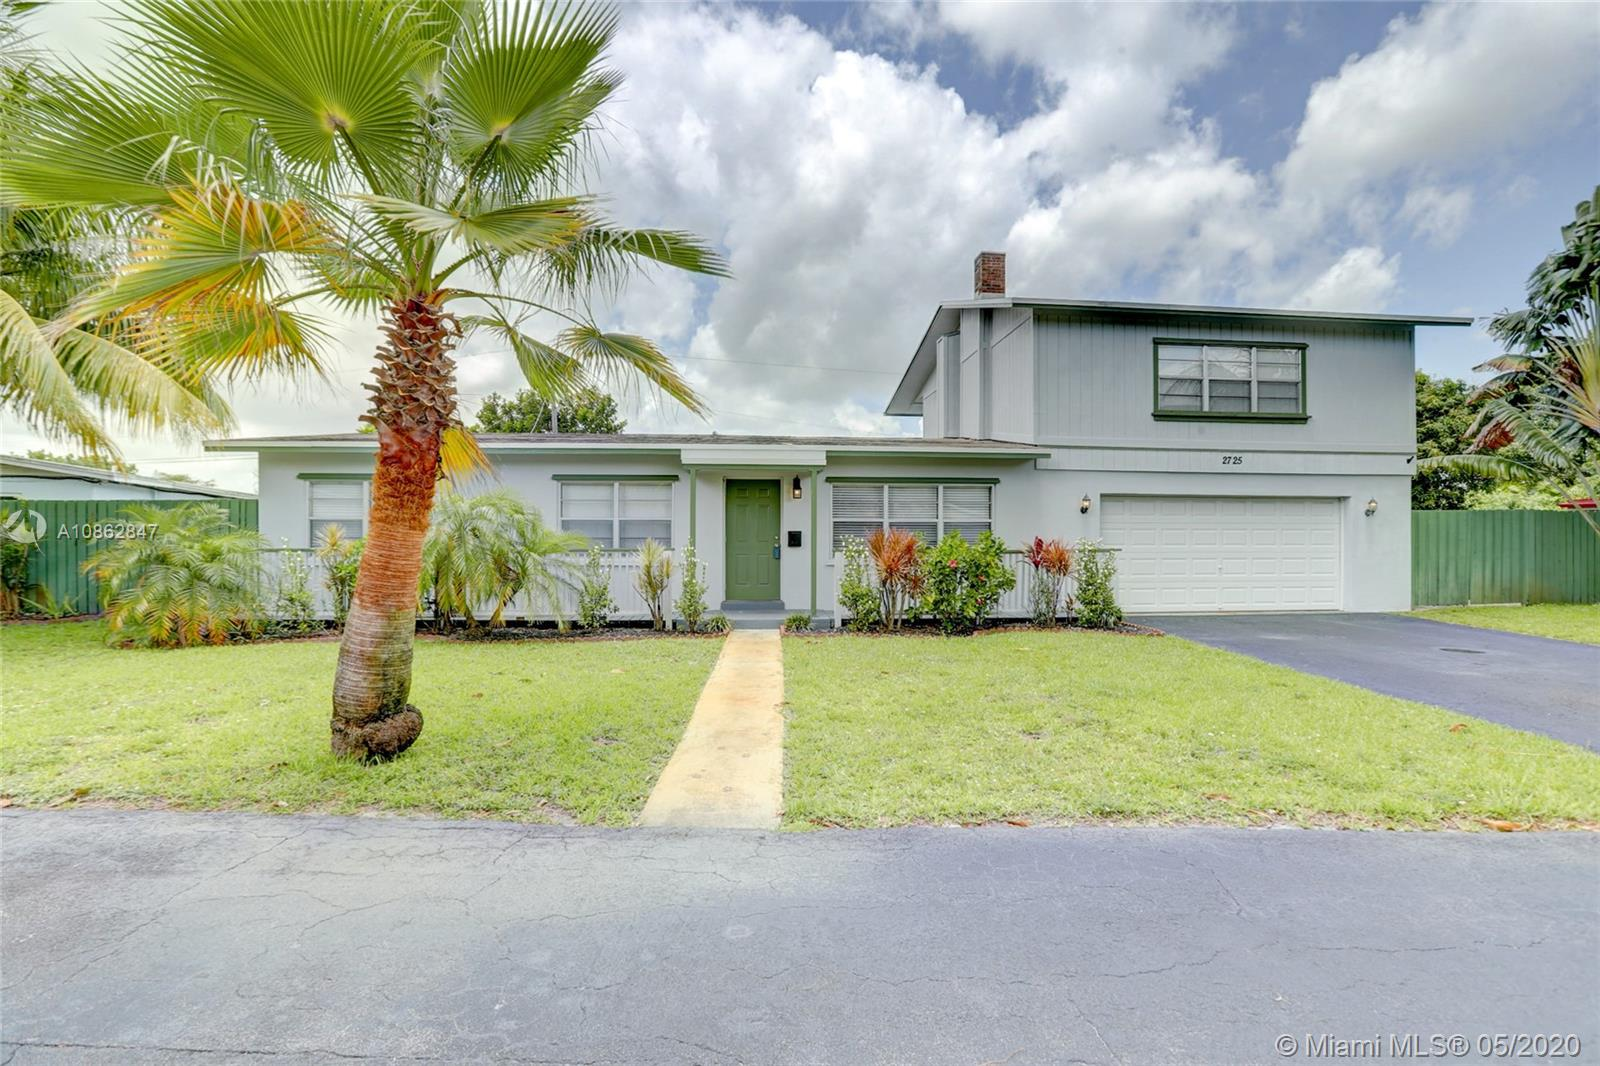 Wilton Manors this is the one you have been waiting for!! 3/2 pool home on an oversized 10k sqft lot minutes from all that Wilton Drive has to offer. The owner has owned this home for the last 40 years and has kept it in immaculate condition. From changing the electrical wiring, and plumbing throughout the home, to building a second story 22x25 entertainment room with an outdoor deck looking over the pool area and expansive yard. 1+ year old A/c system as well as an oversized garage. Side gate allows you to park a boat or RV on the property. NO HOA